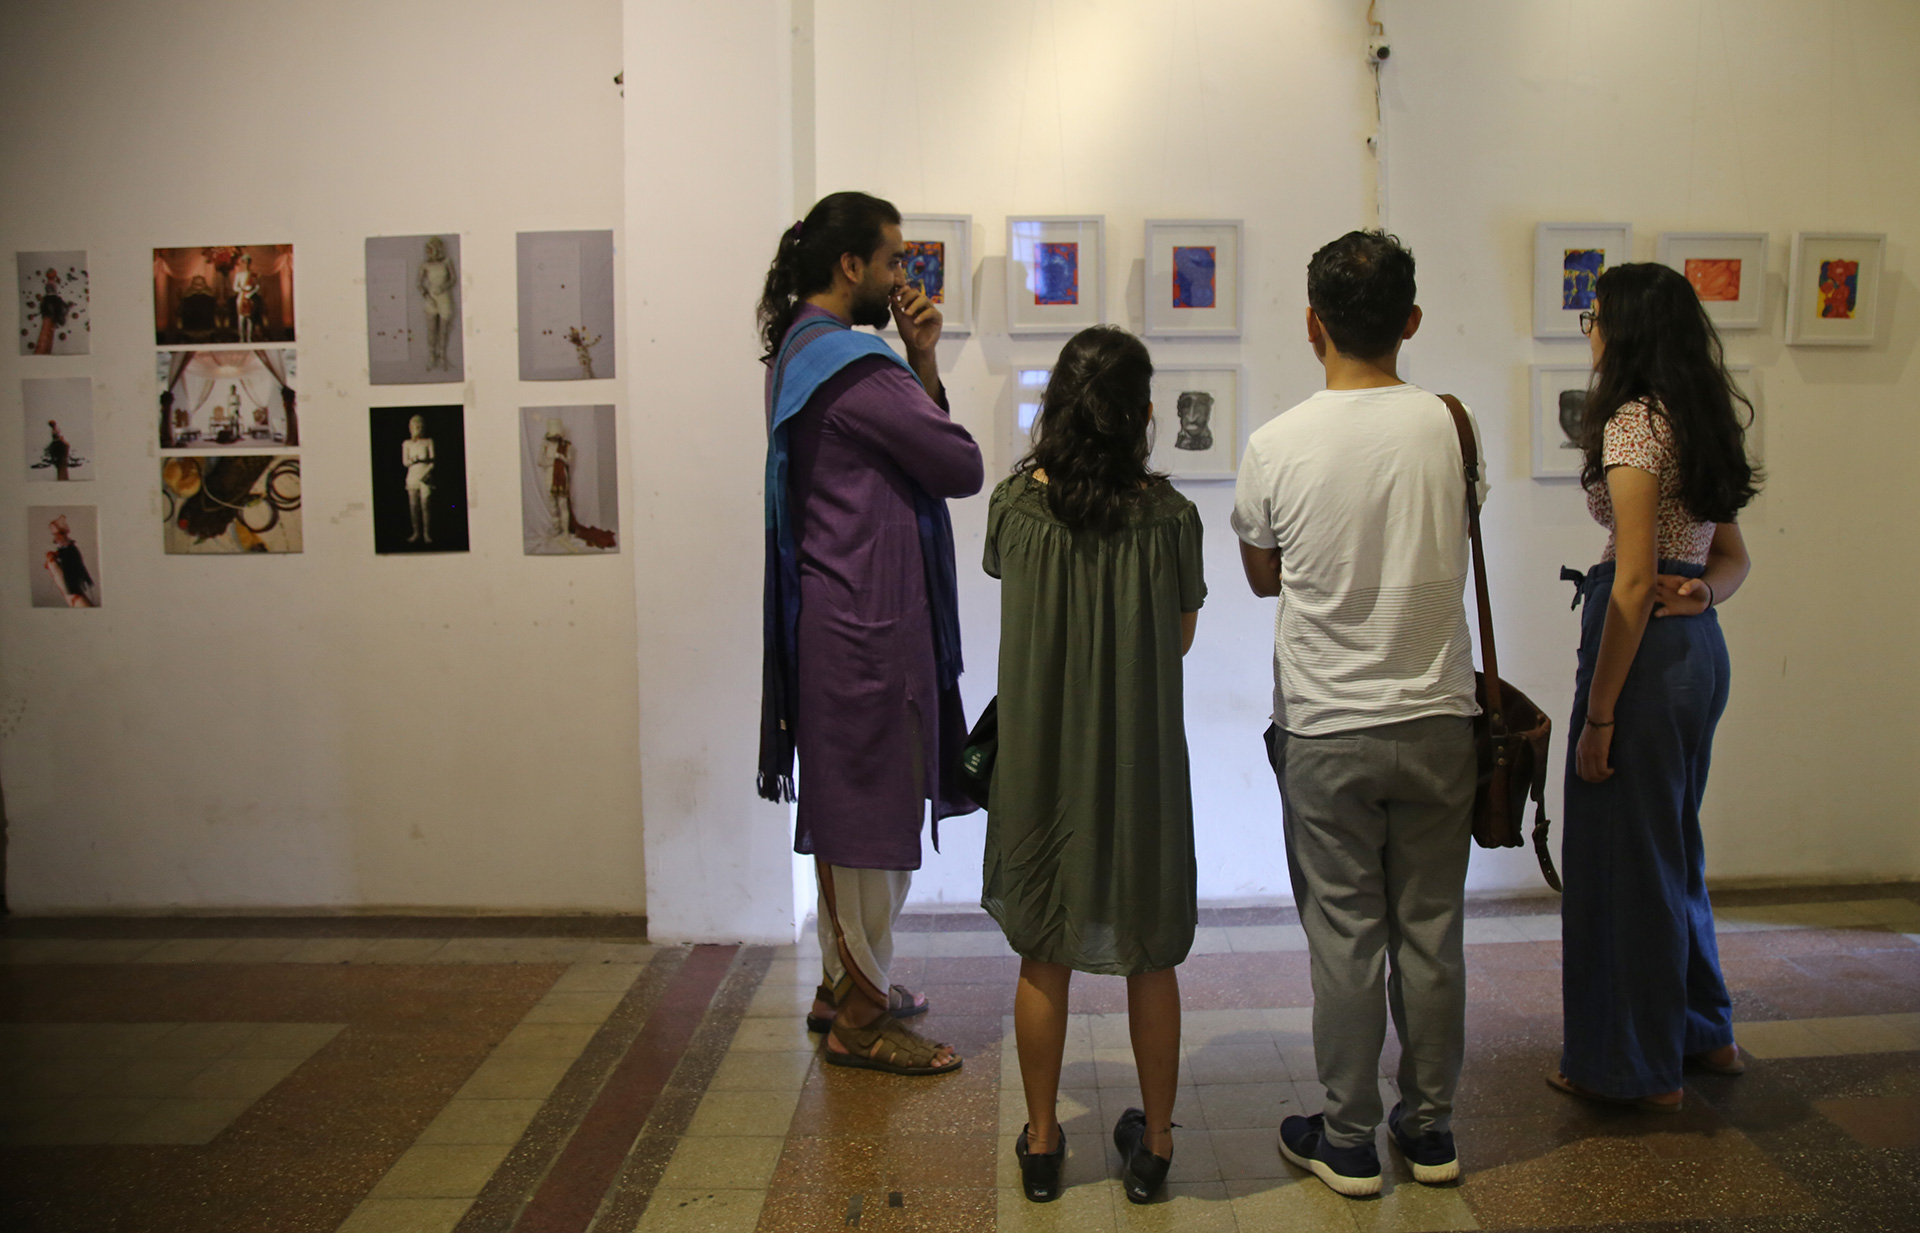 Aditya Verma shows around visitors at Label-less, The Futures of Sexuality, curated by Aditi Rakhe | Futures of Sexuality | STIRworld